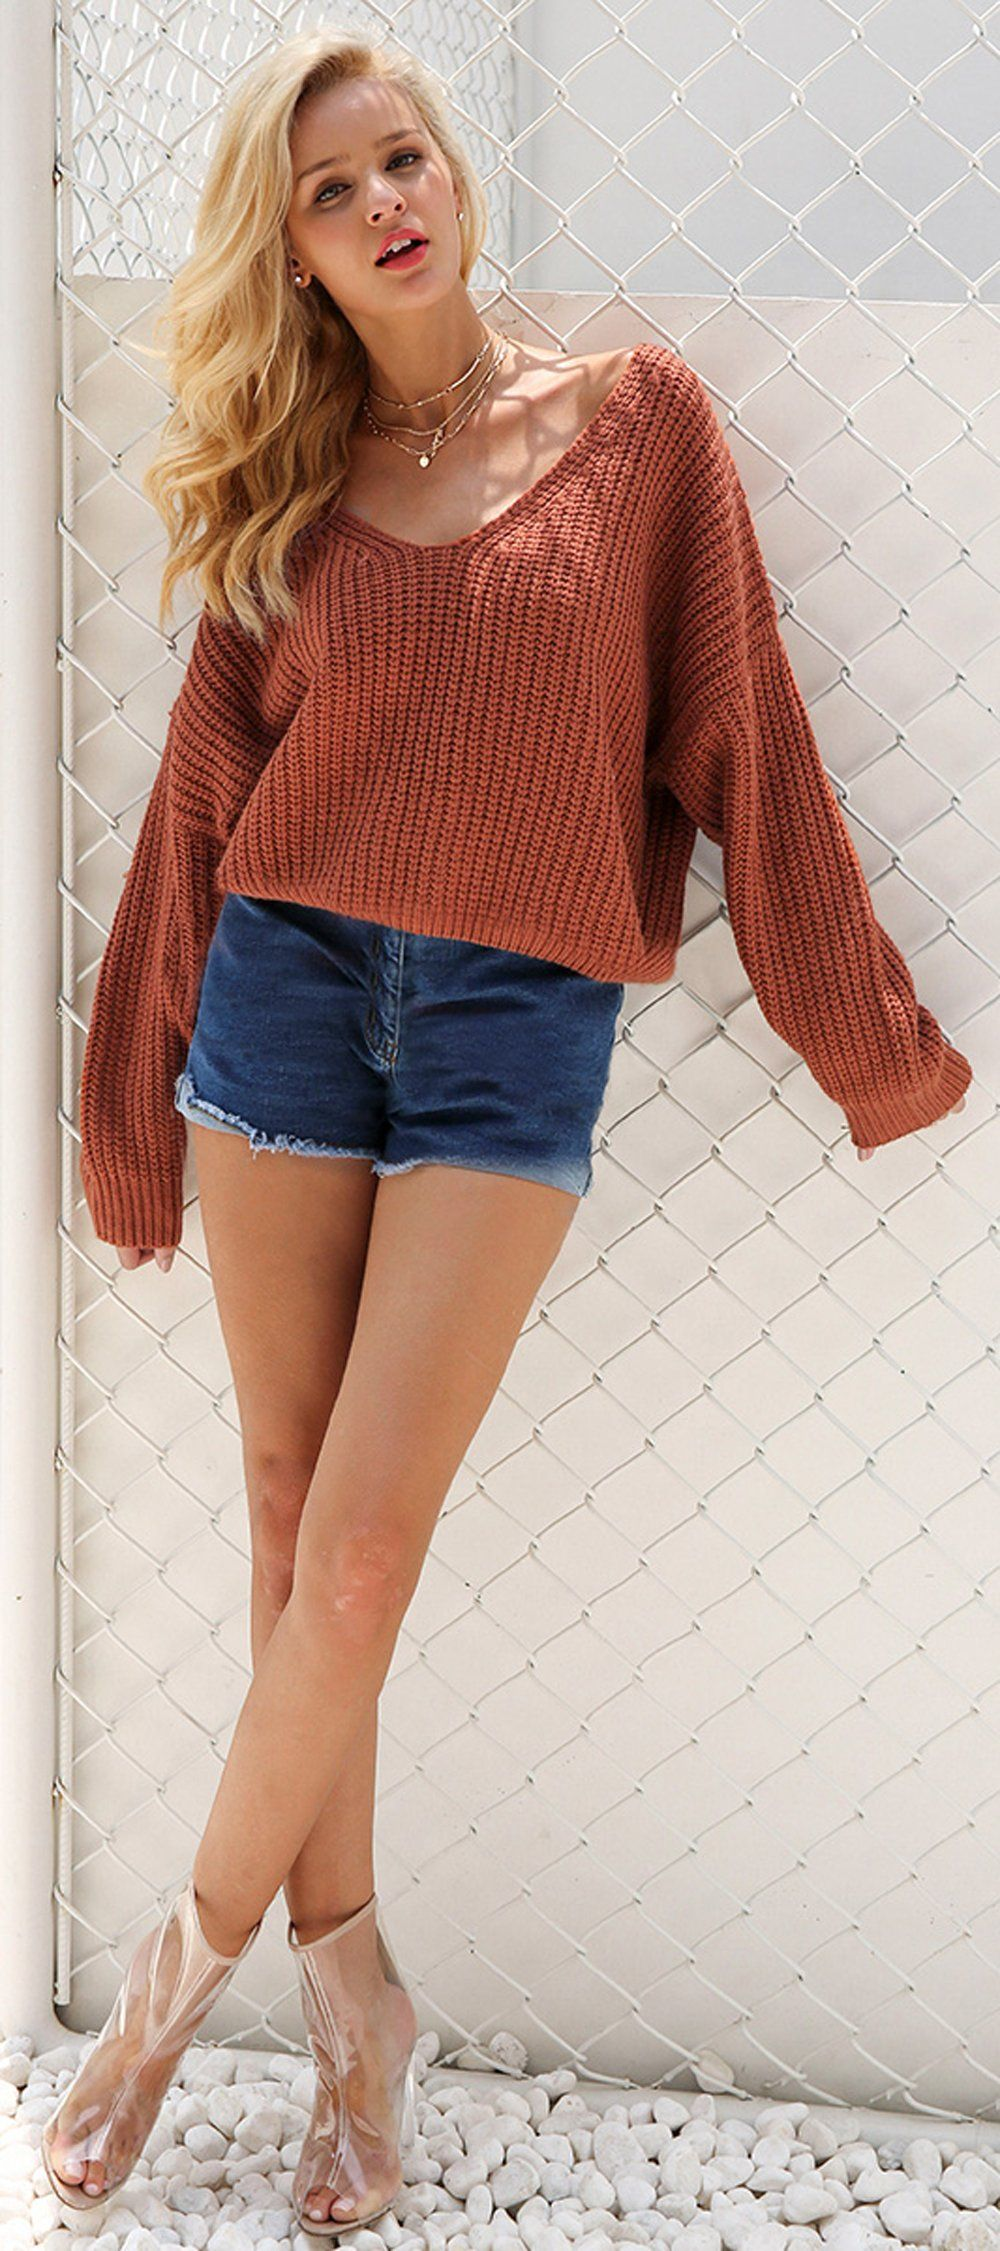 Cute Casual Spring Outfit Ideas for Teen Girls for School 2018 Shorts  Oversized Knitted Sweater with Lace Up Back - www.GlamantiBeauty.com 4cc182397